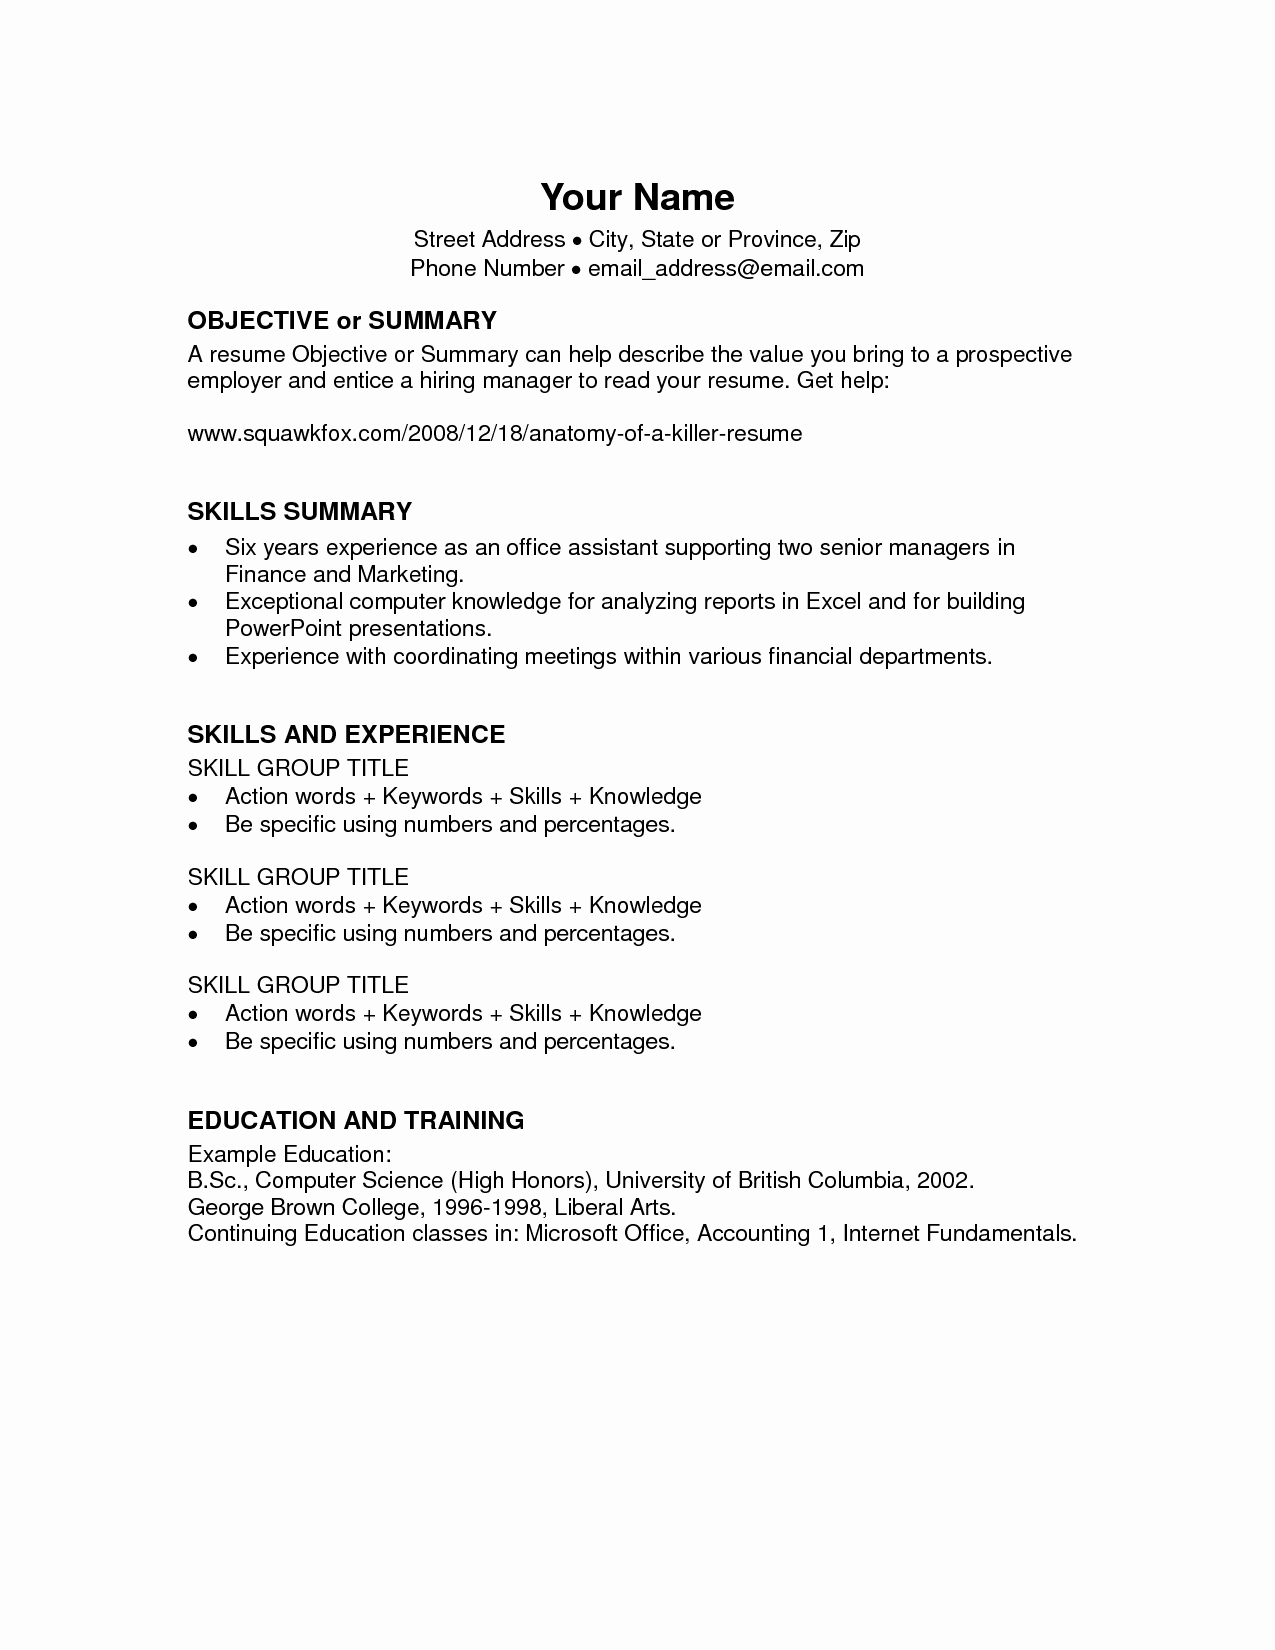 Microsoft Office Word Resume Template Unique Microsoft Fice Resume Templates